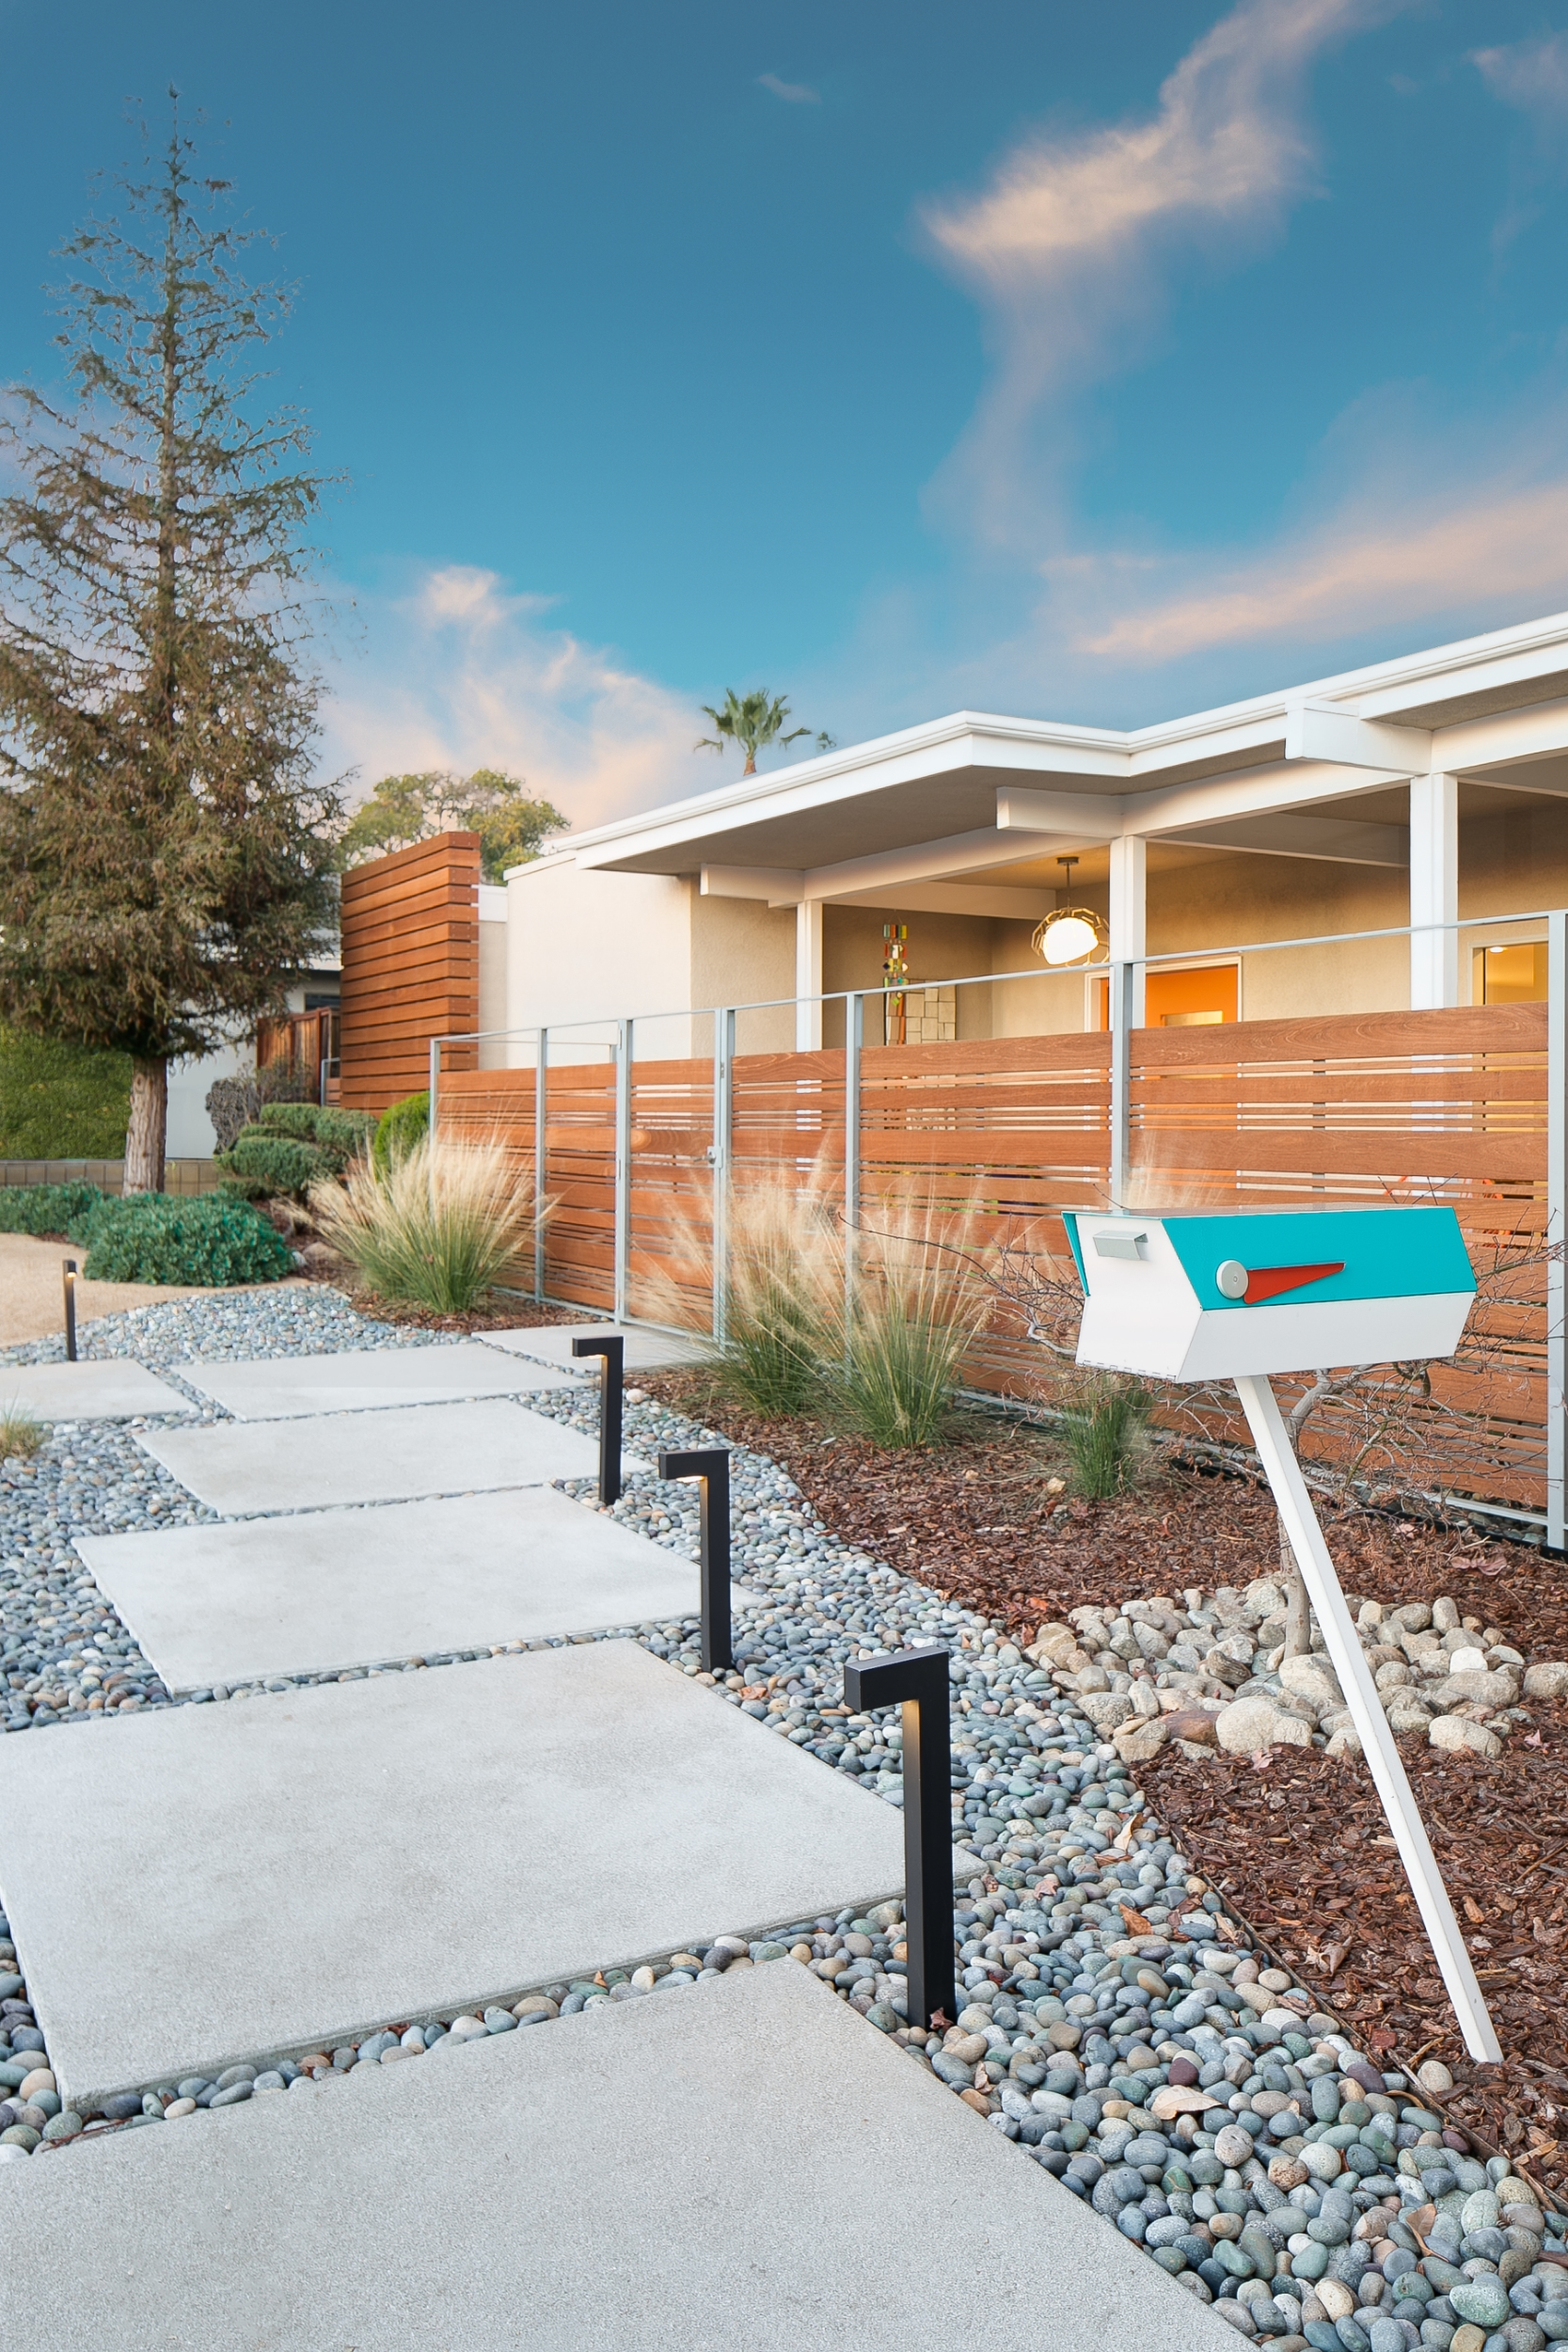 Mid-century modern exterior with a concrete paver walkway set in decorative stones, a teal mailbox, wood fence, and with water-wise landscaping